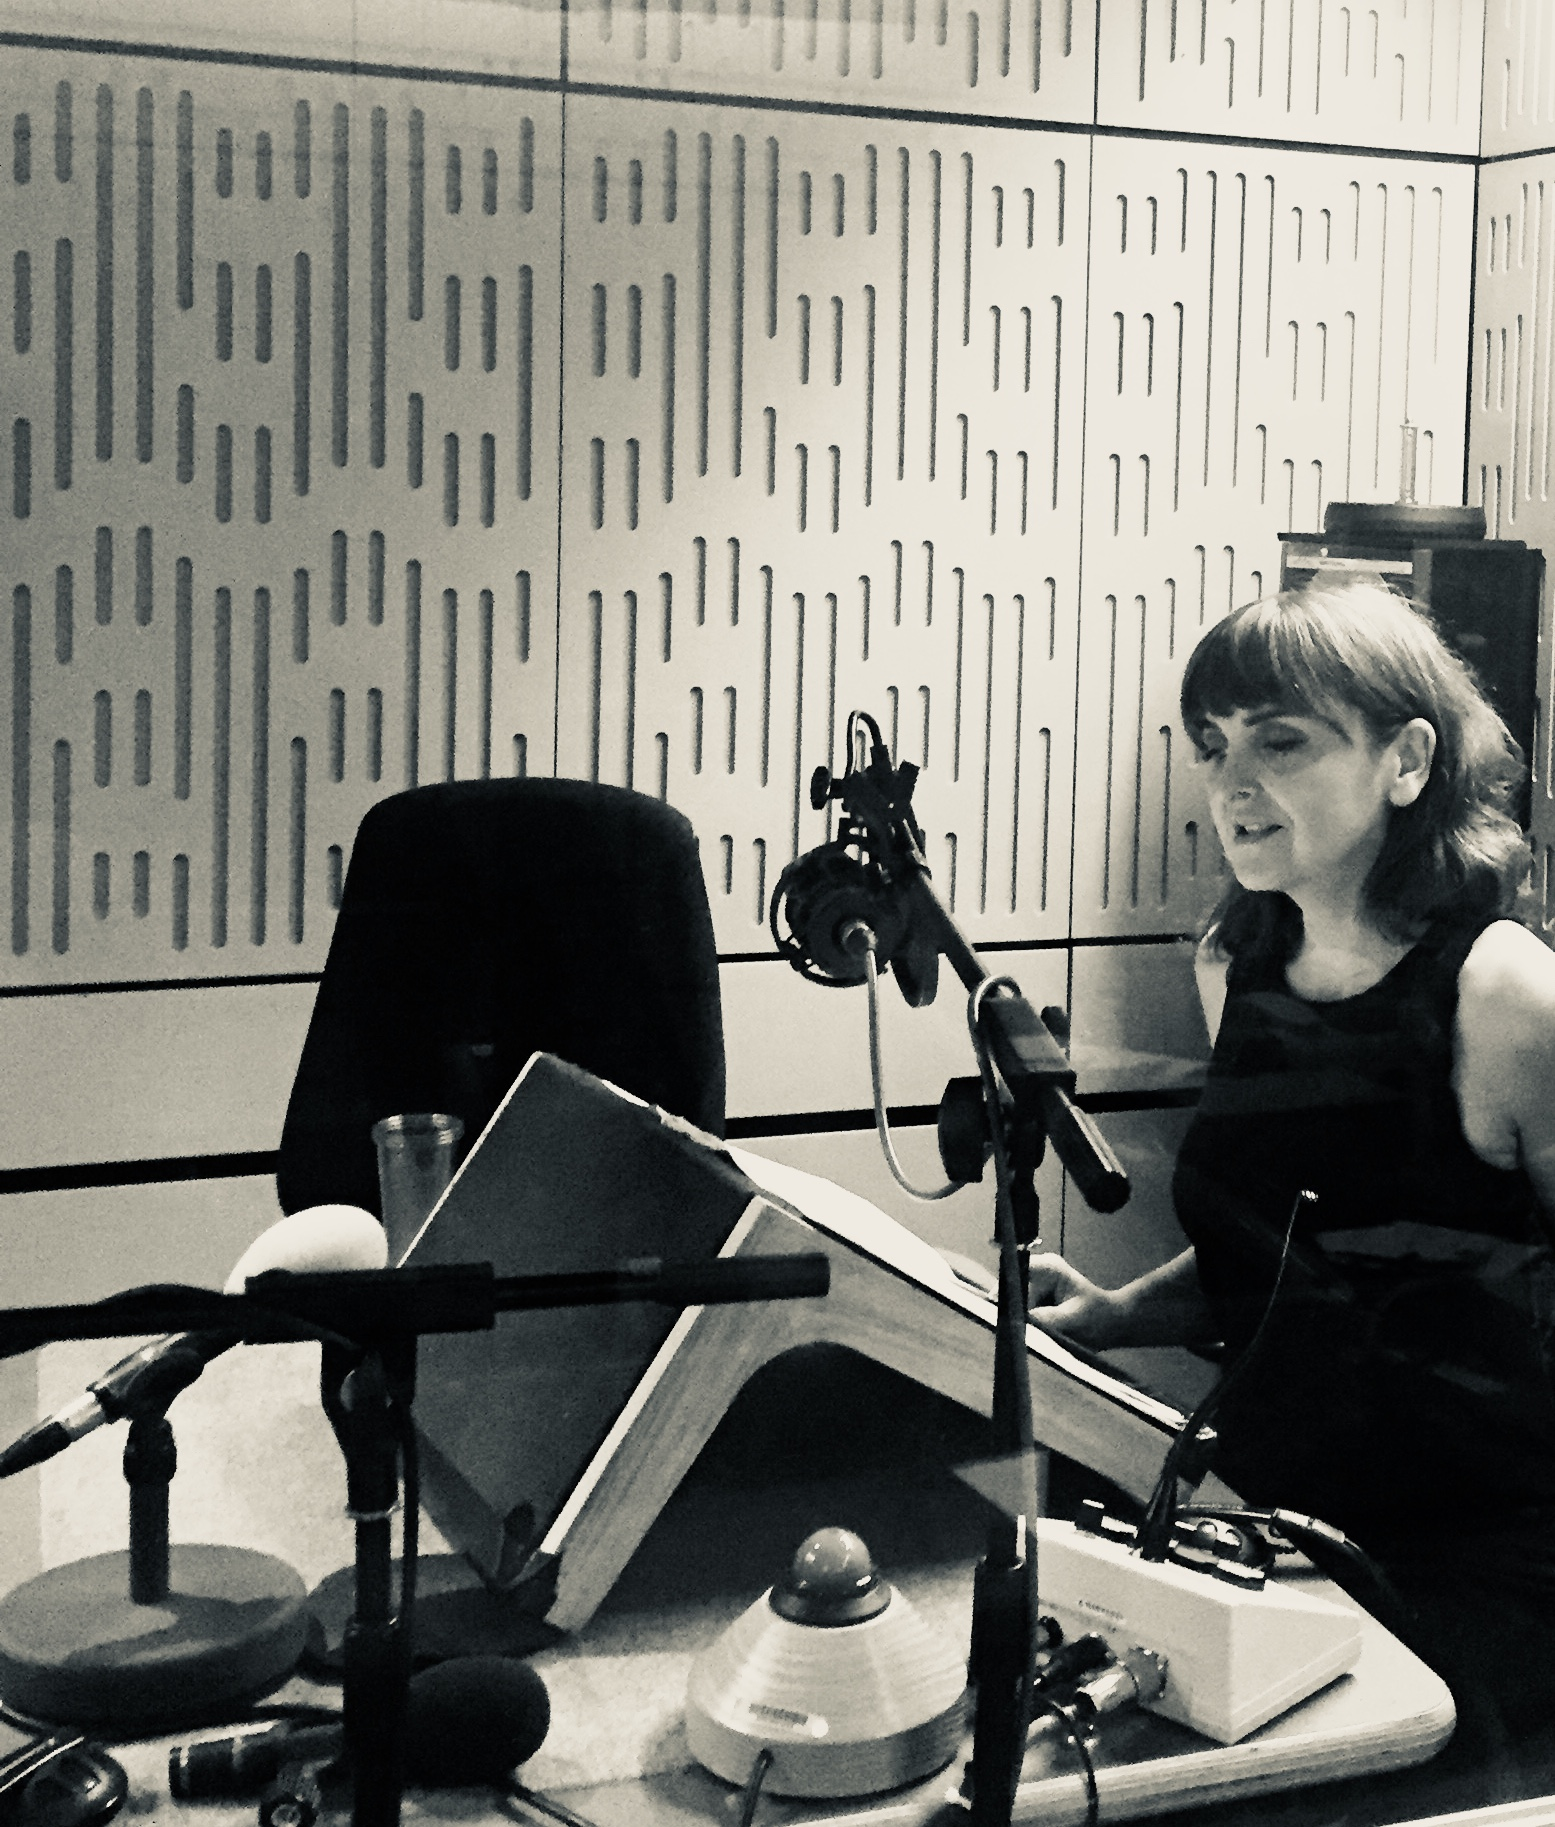 November 2017 - Recording Ten Episodes of Eleanor Olliphant is completely Fine by Gail Honeyman for BBC Radio 4 -Book at Bedtime directed by Justine Willet.